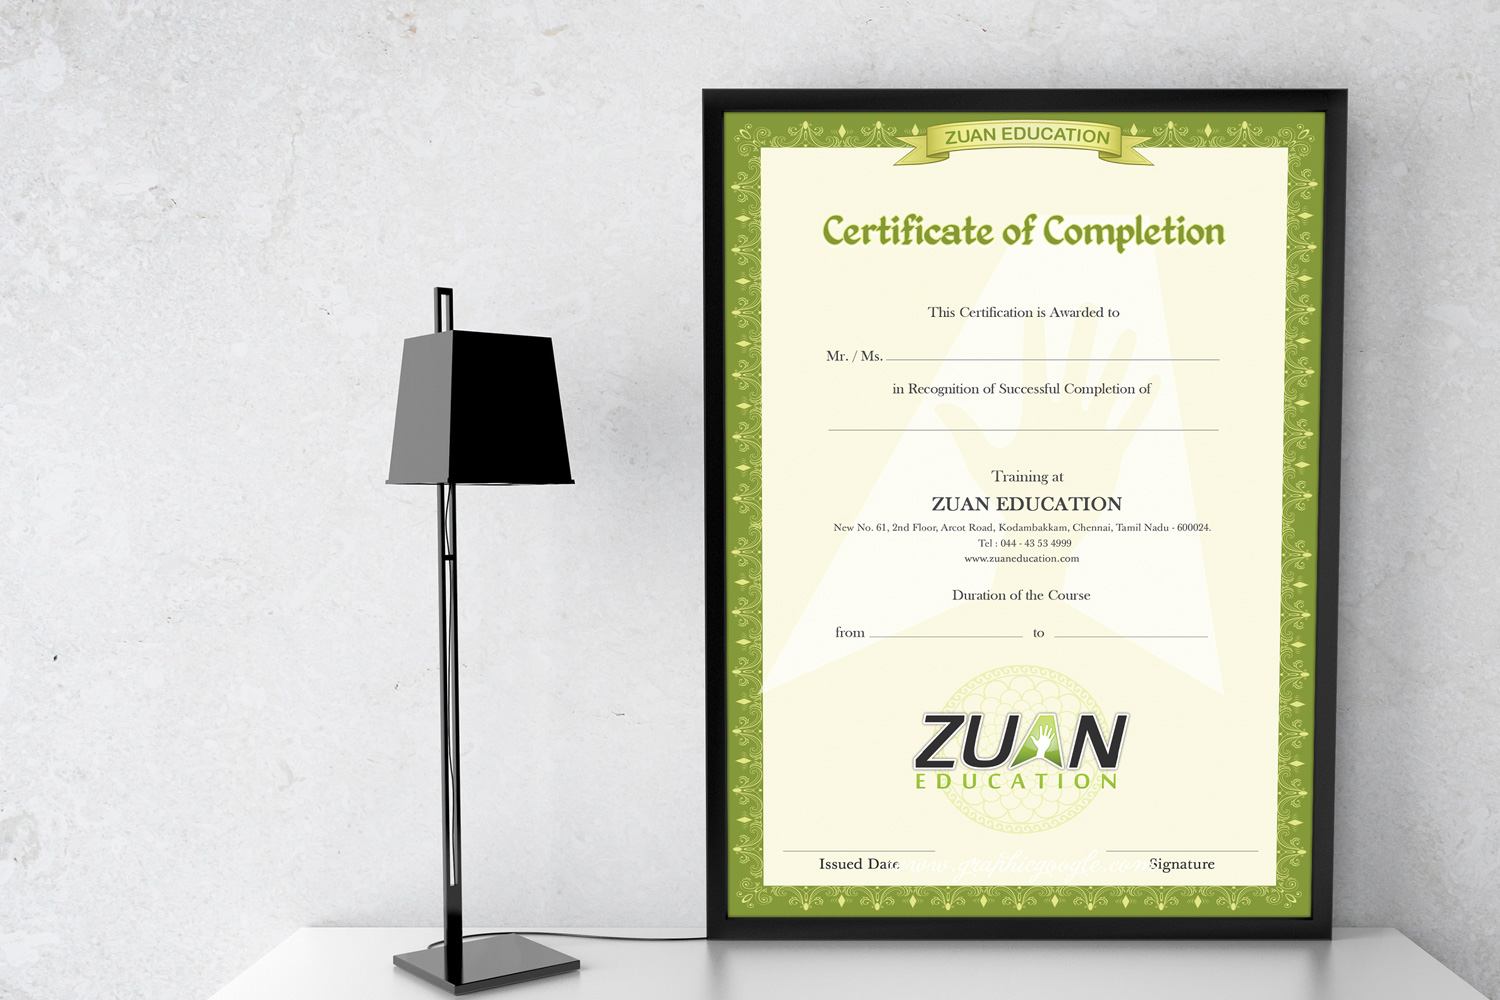 zuan education course completion certificate